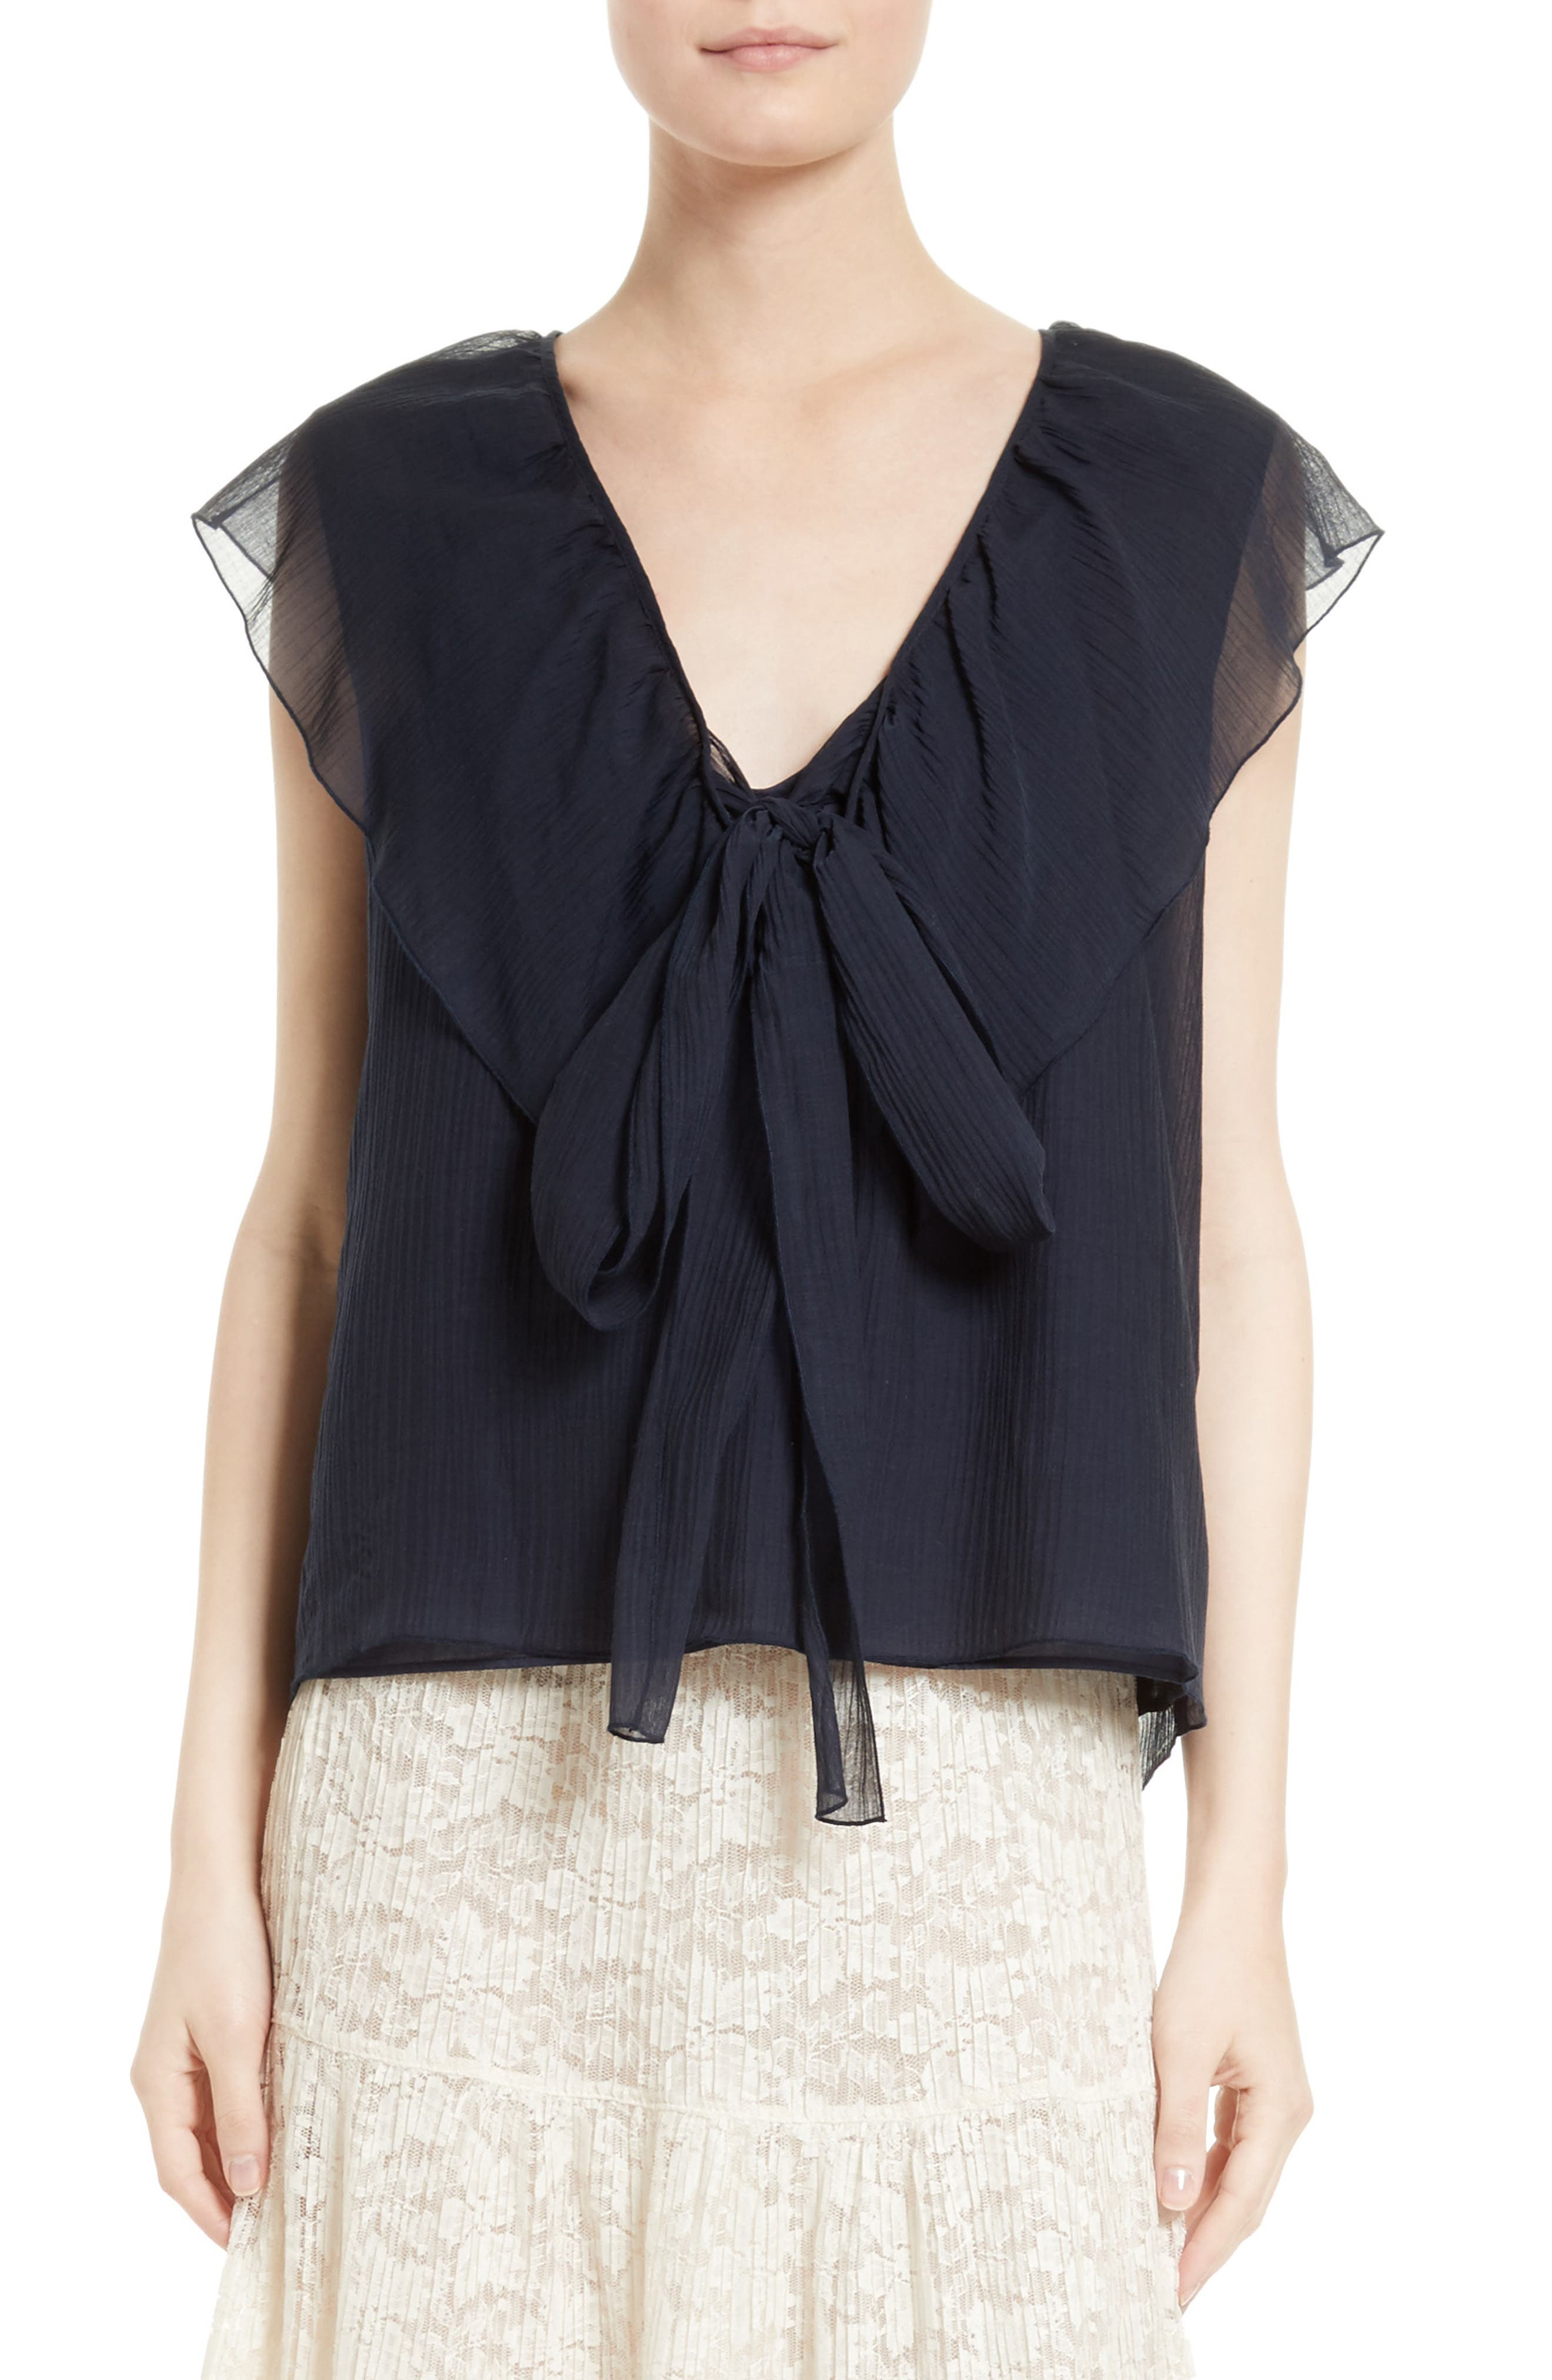 Alternate Image 1 Selected - See by Chloé Cotton & Silk Ruffle Top